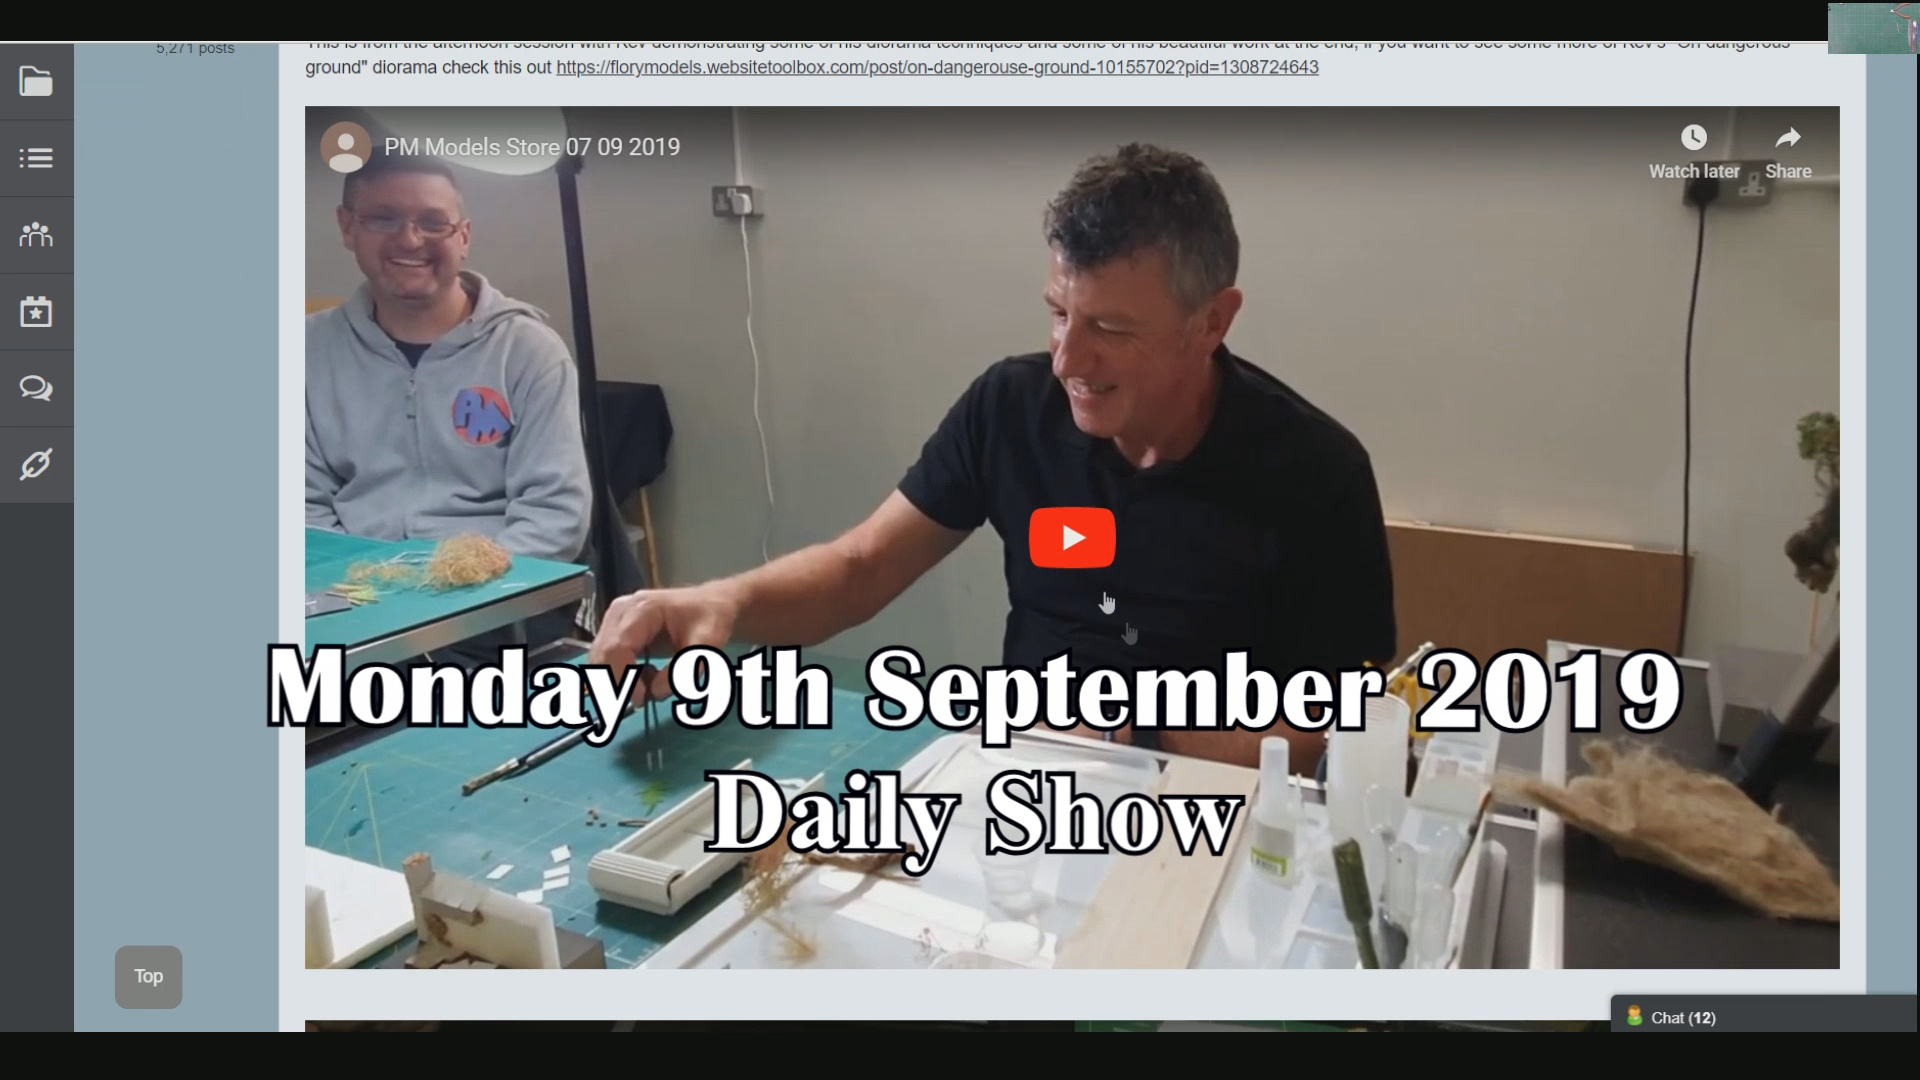 Daily Show Monday 9th September 2019